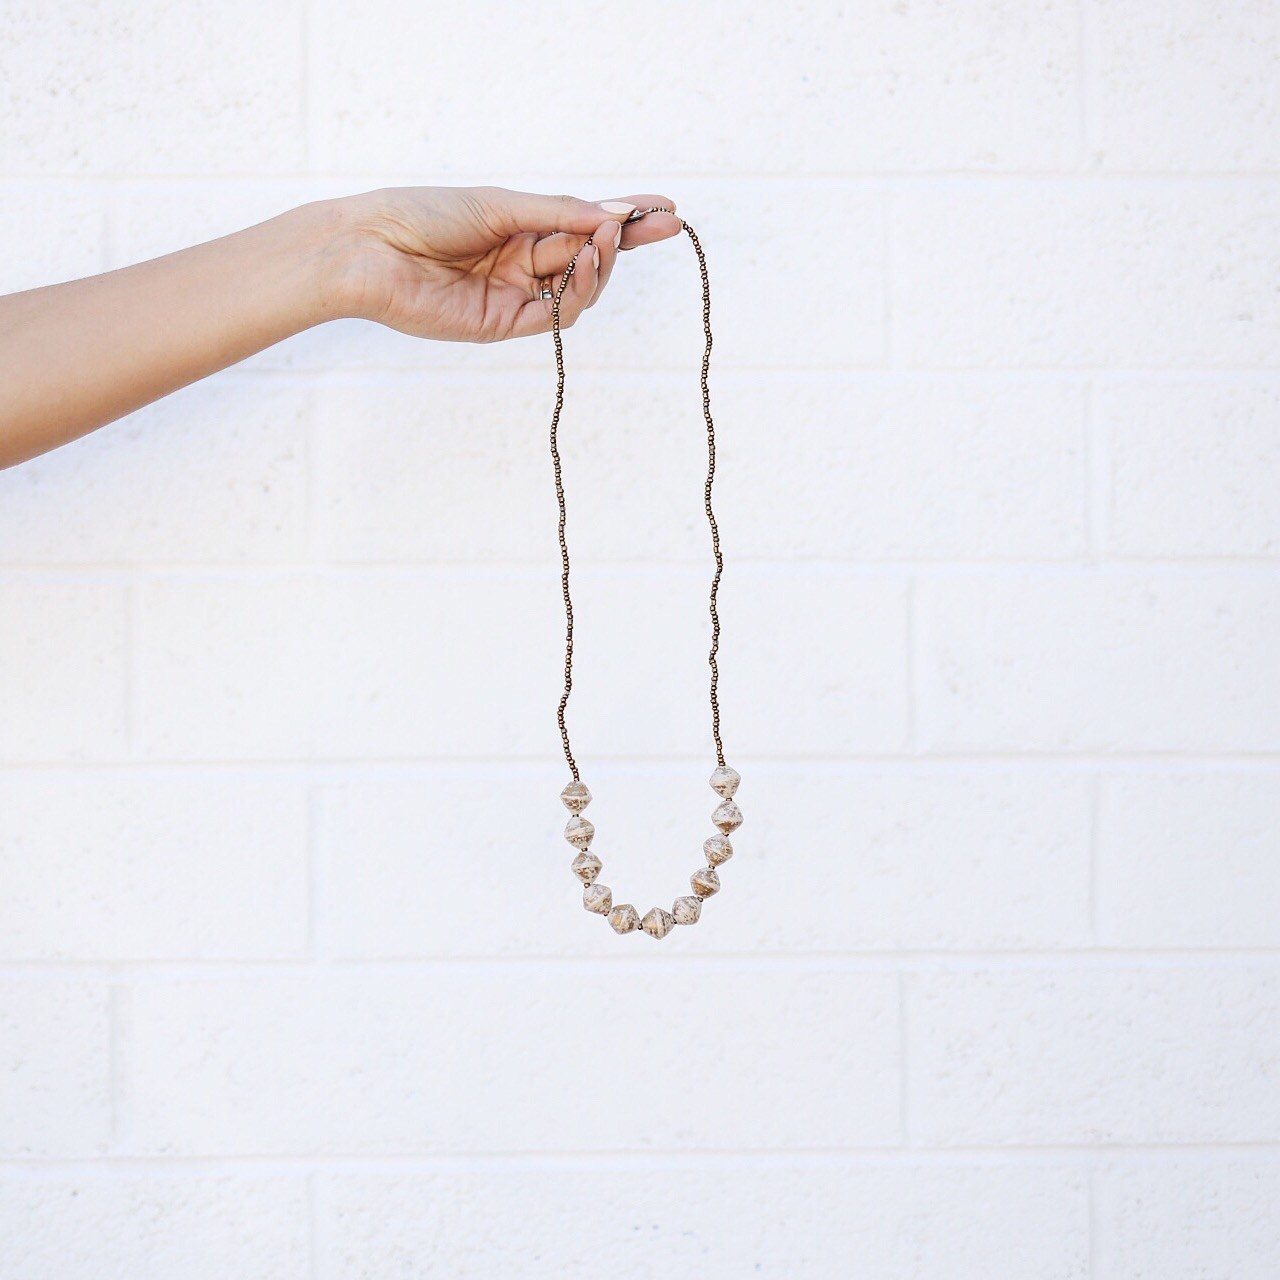 31 Bits Necklace - Best Products for Women | elanaloo.com